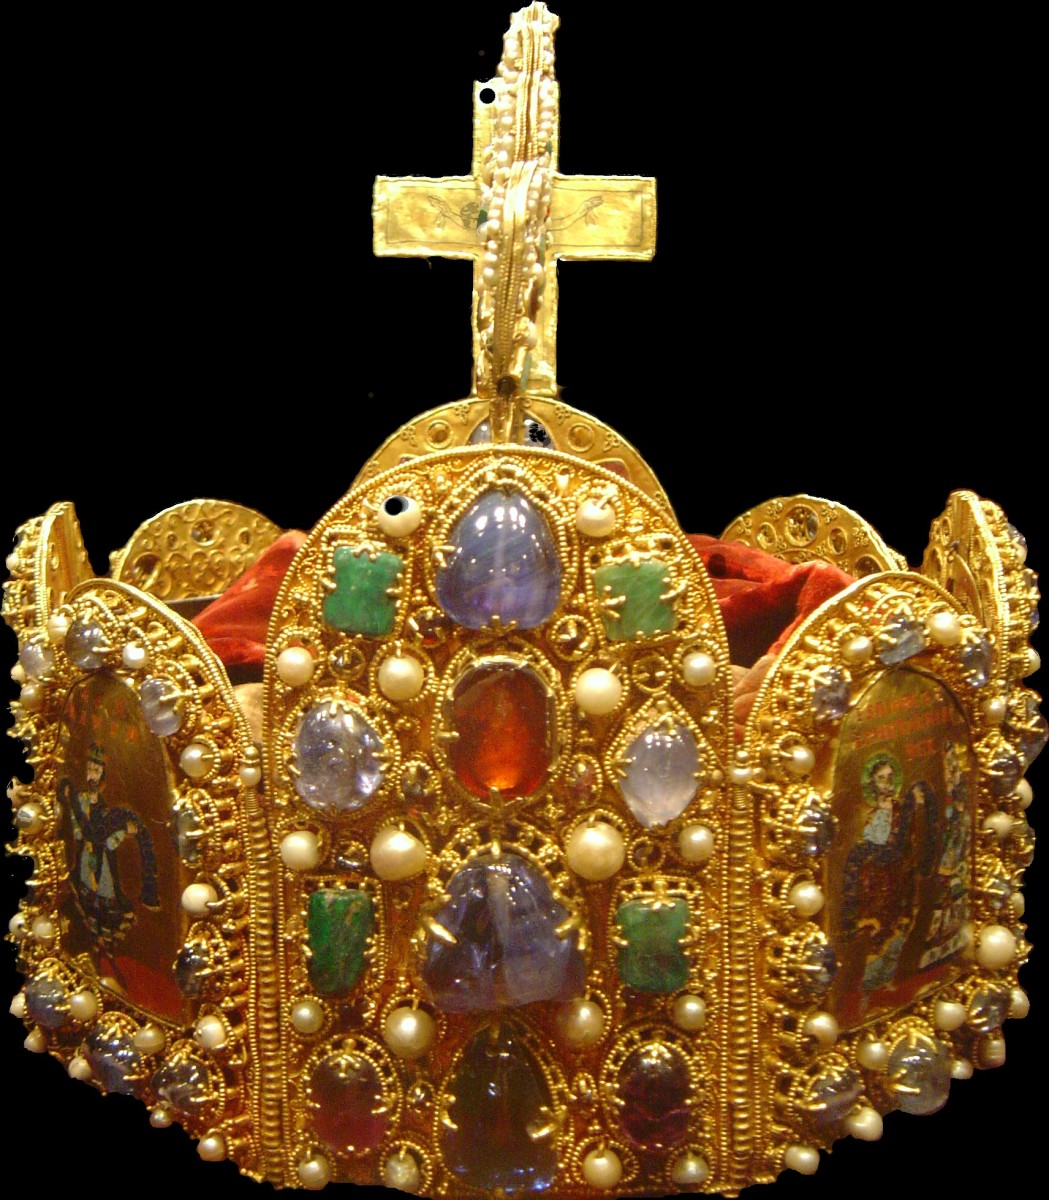 THE ACTUAL CROWN OF CHARLEMAGNE